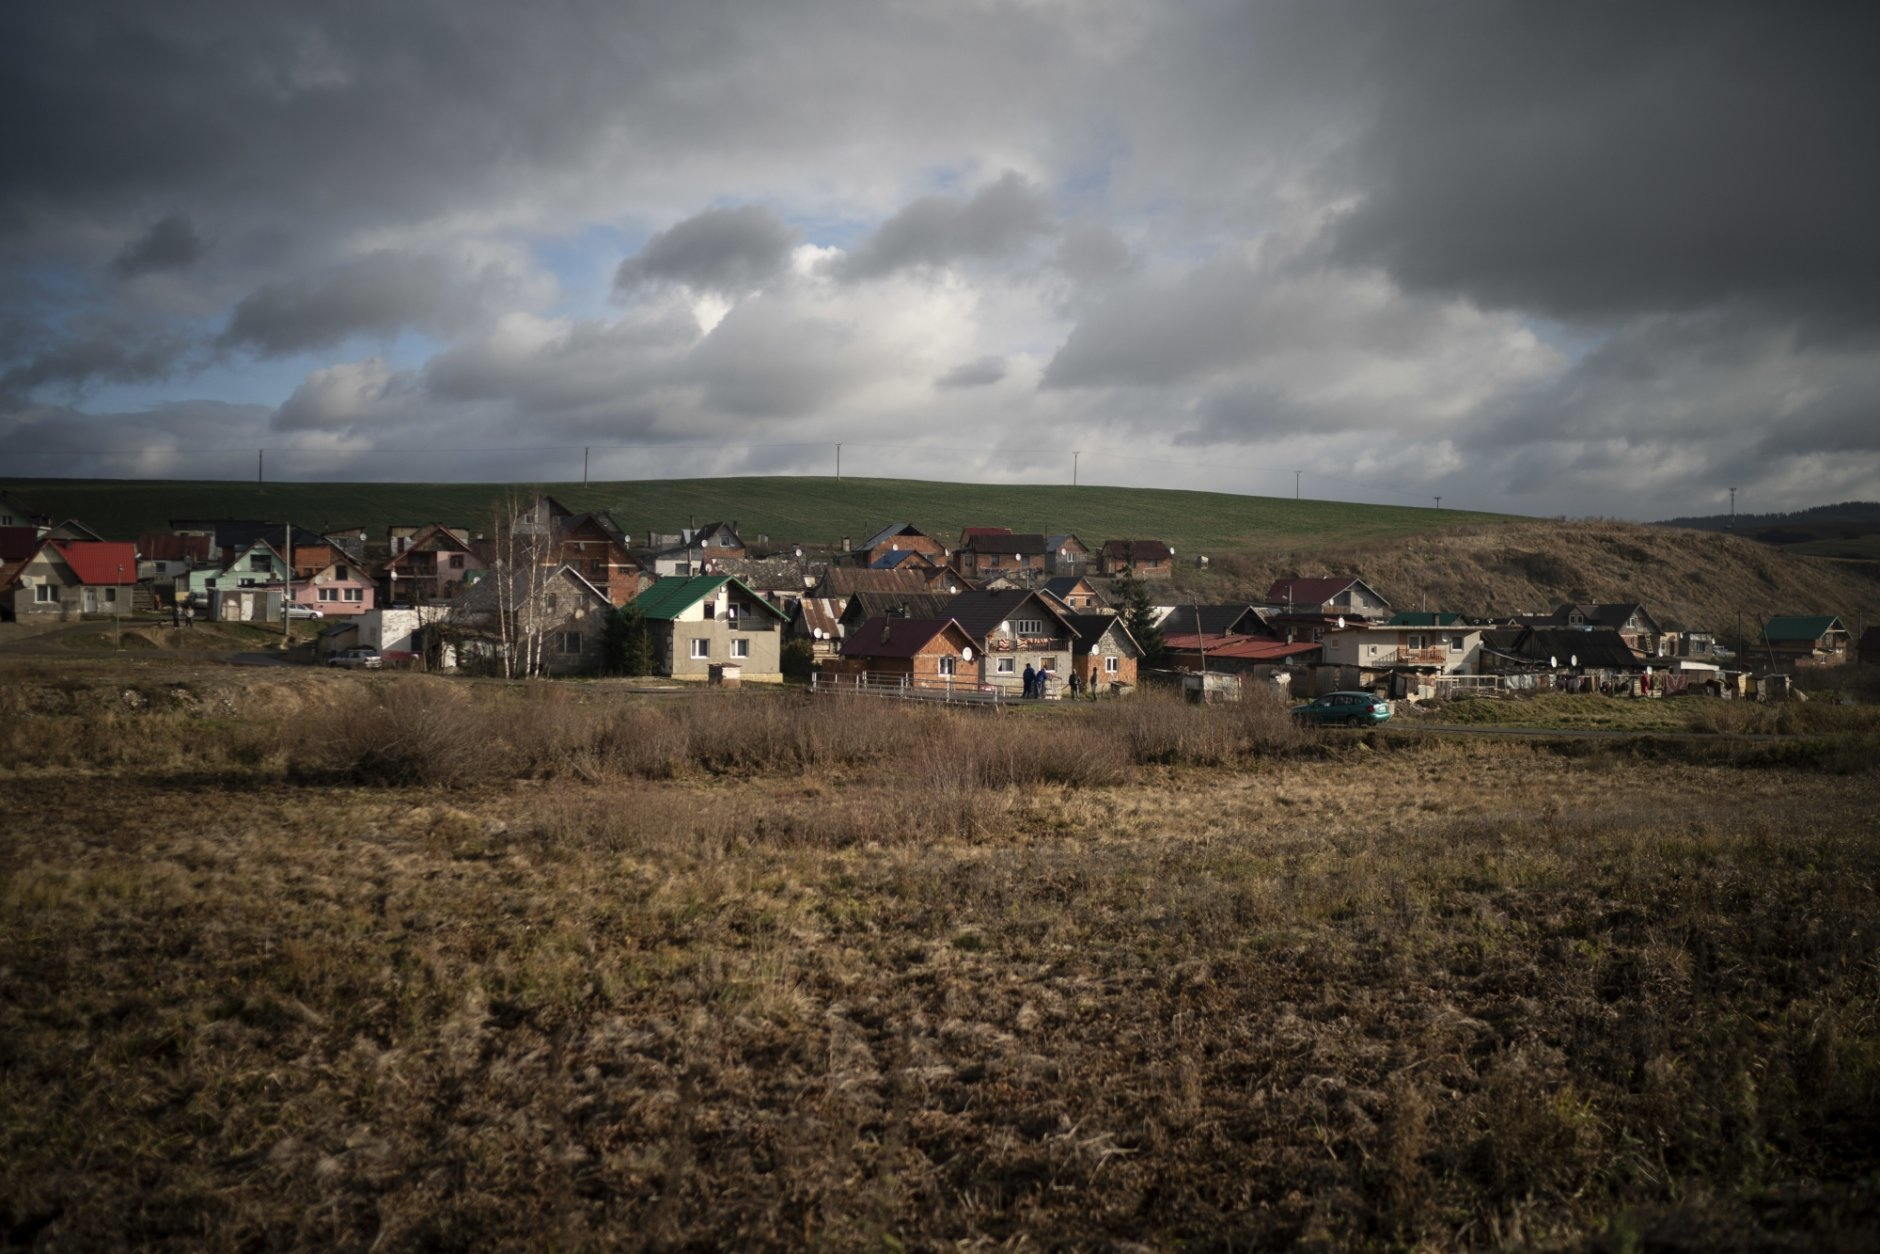 In this Nov. 14, 2018, photo, dark clouds hover over Podhorany village after a storm near Kezmarok, Slovakia. An investigation by The Associated Press has found that women and their newborns in Slovakia are routinely, unjustifiably and illegally detained in hospitals across the European Union country. Roma women, vulnerable to racist abuse and physical violence, suffer particularly.  They're also often poor, and mothers who leave hospitals before doctors grant permission forfeit their right to a significant government childbirth allowance of several hundred euros. (AP Photo/Felipe Dana)